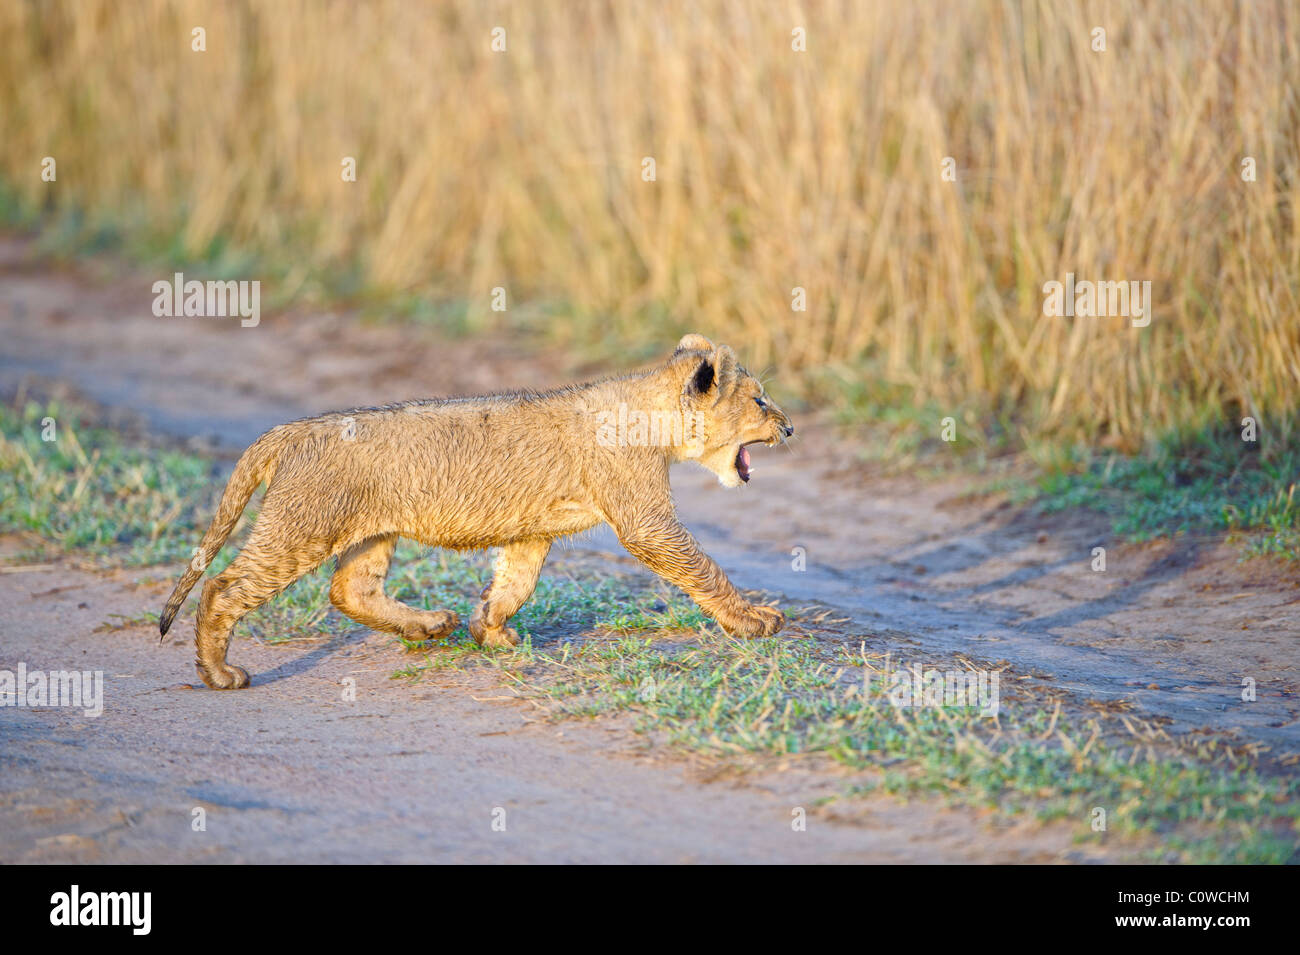 A young lion cub growls as he crosses a dirt track in the Masai Mara in Kenya. - Stock Image